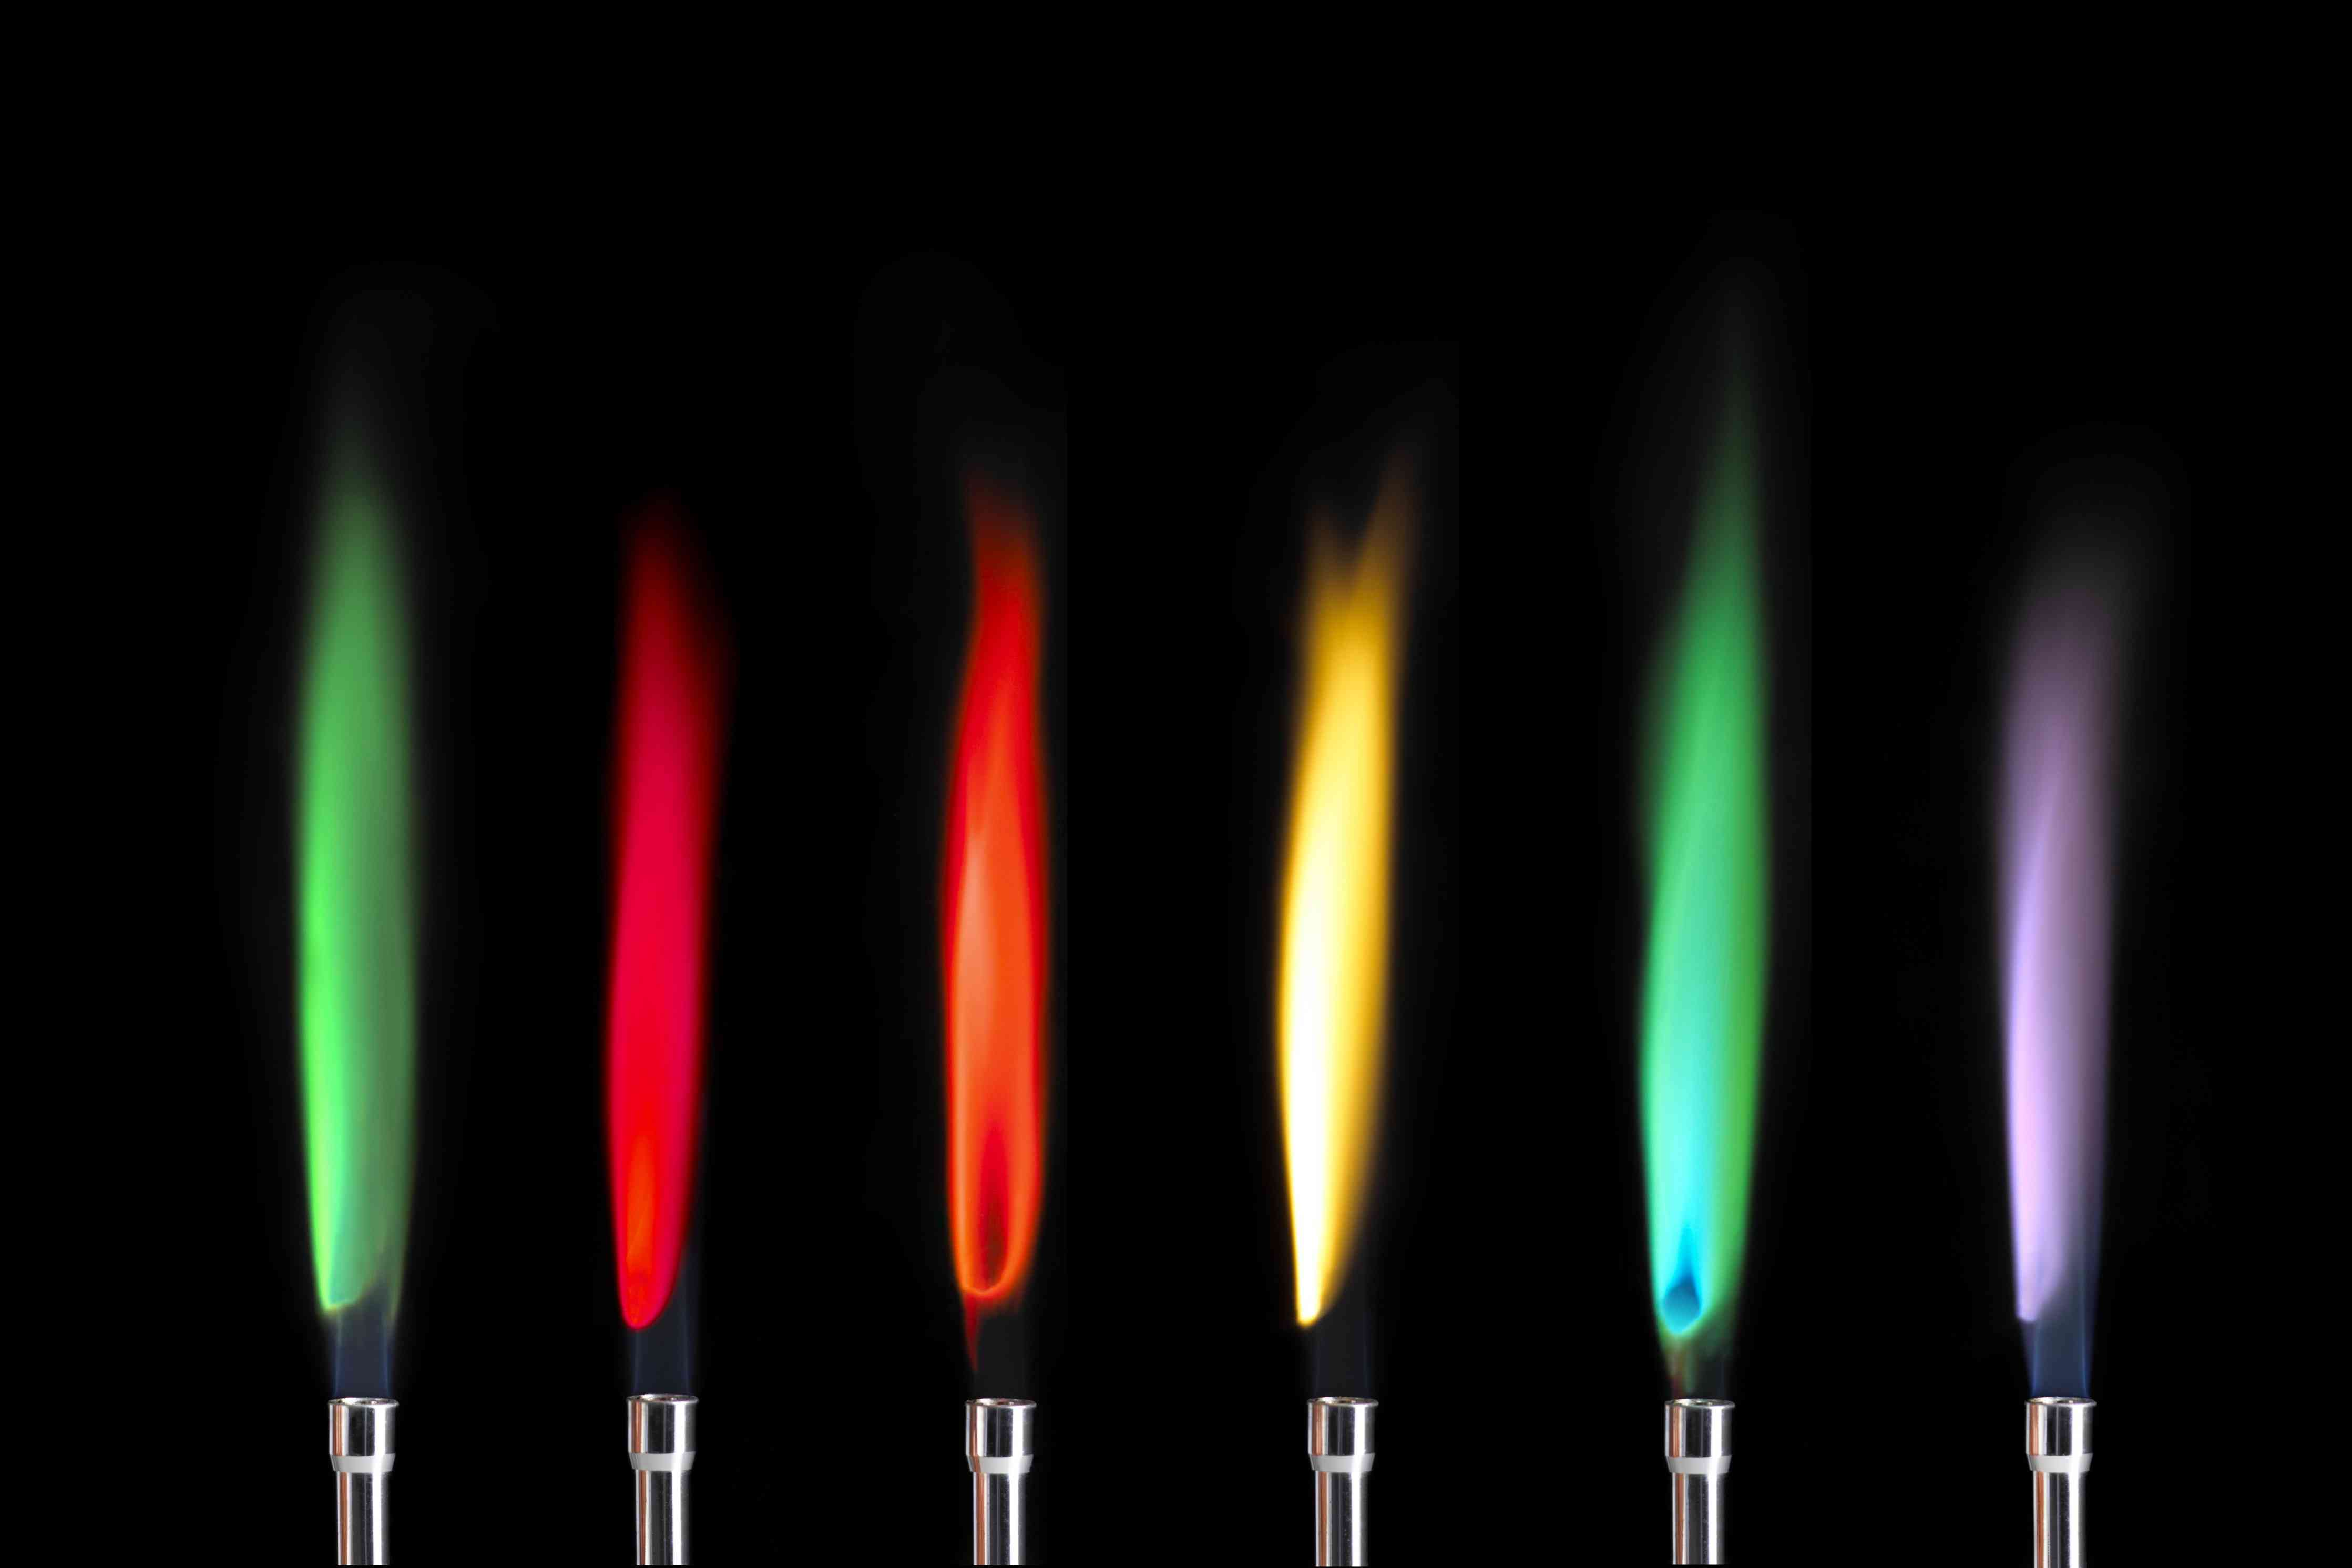 Row of flames in different colors.